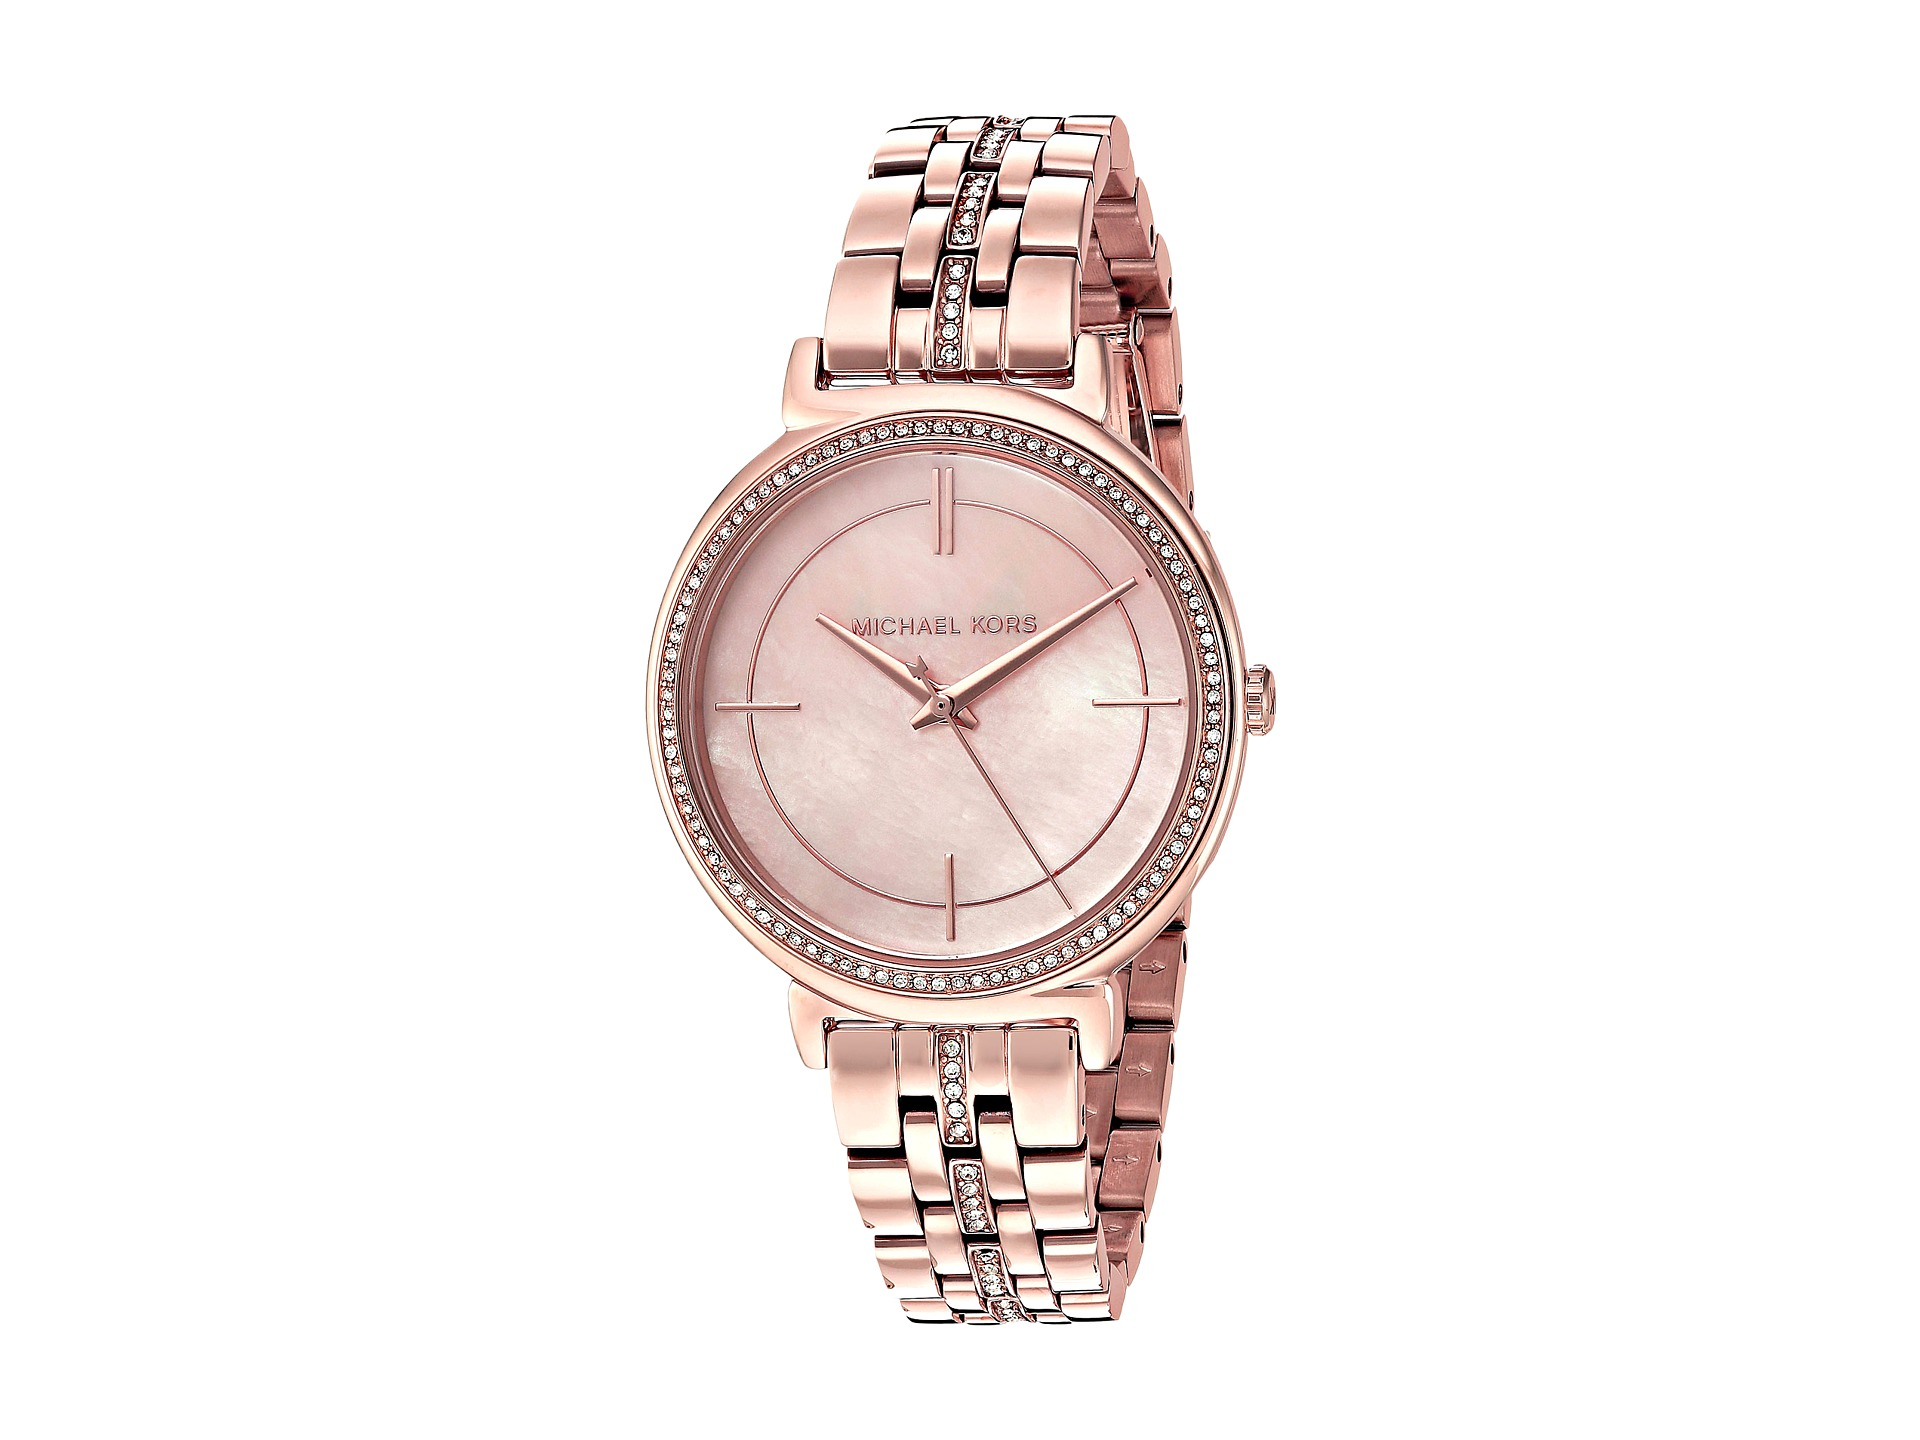 Michael Kors Rose Gold Watch With Mother Of Pearl Face